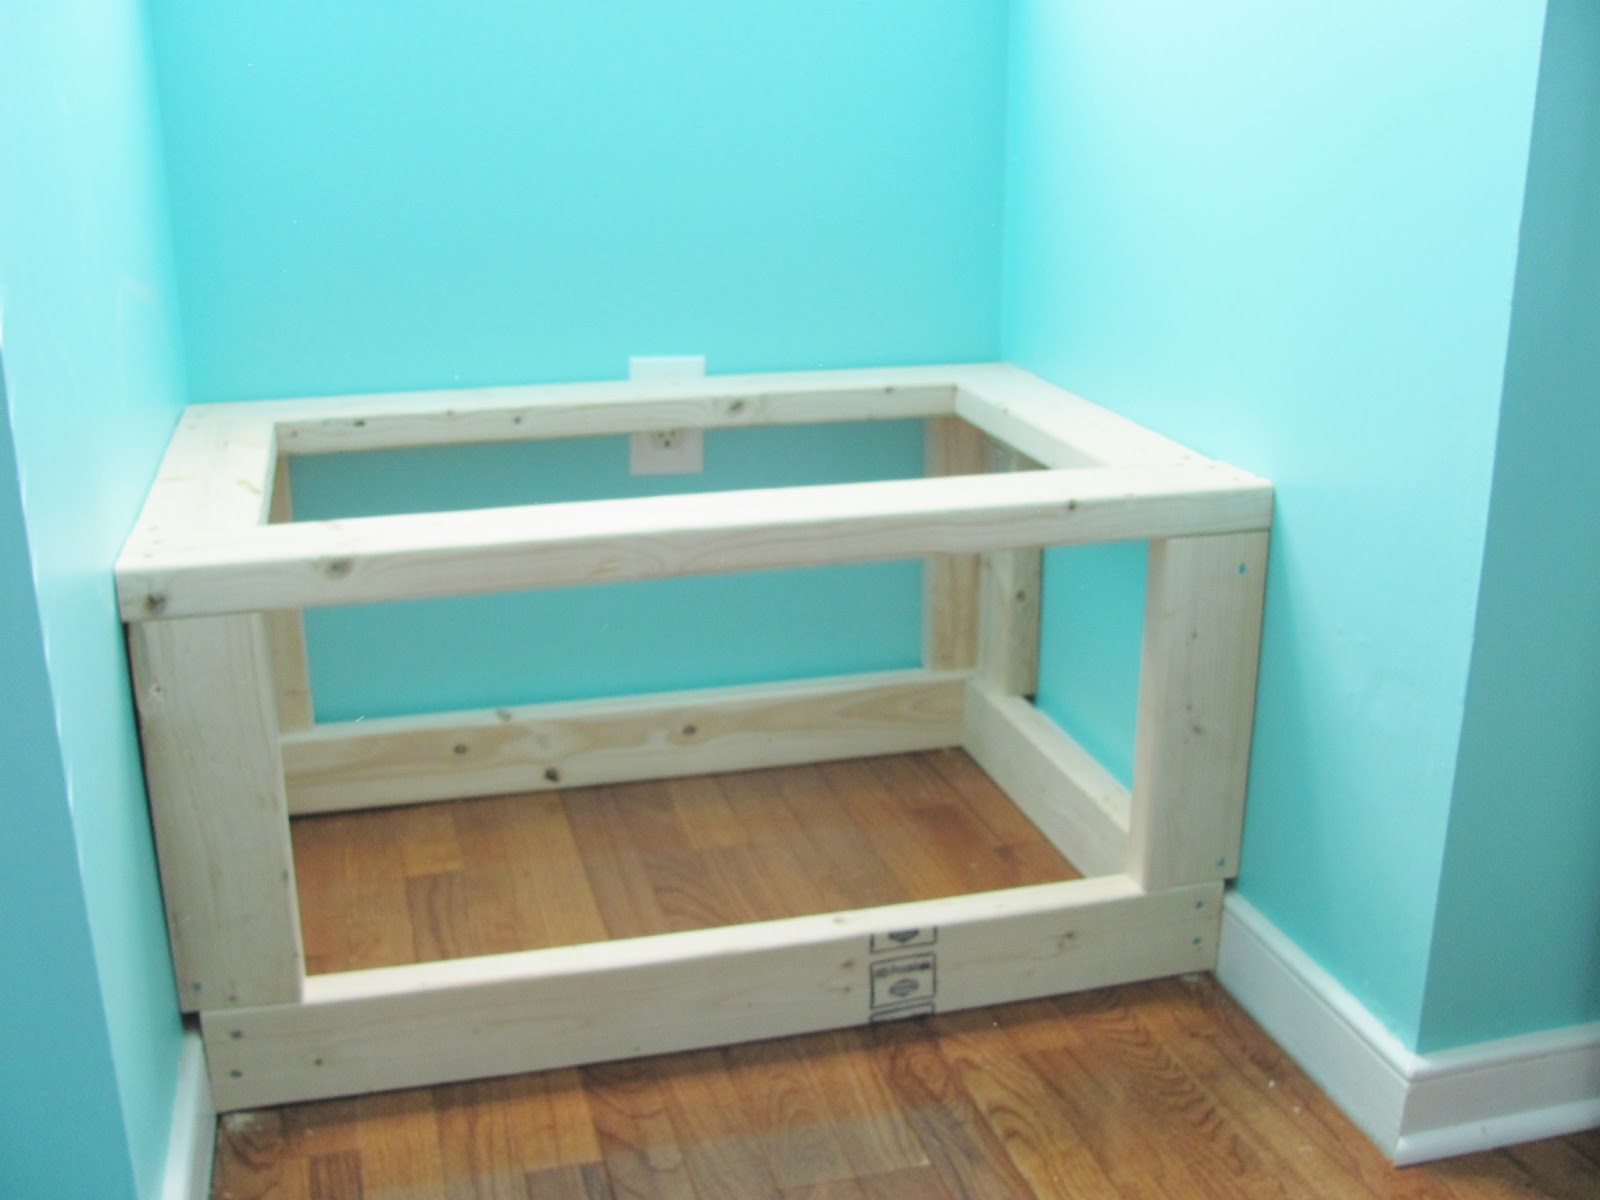 Diy Bed Bench Storage Love This Fun To Build